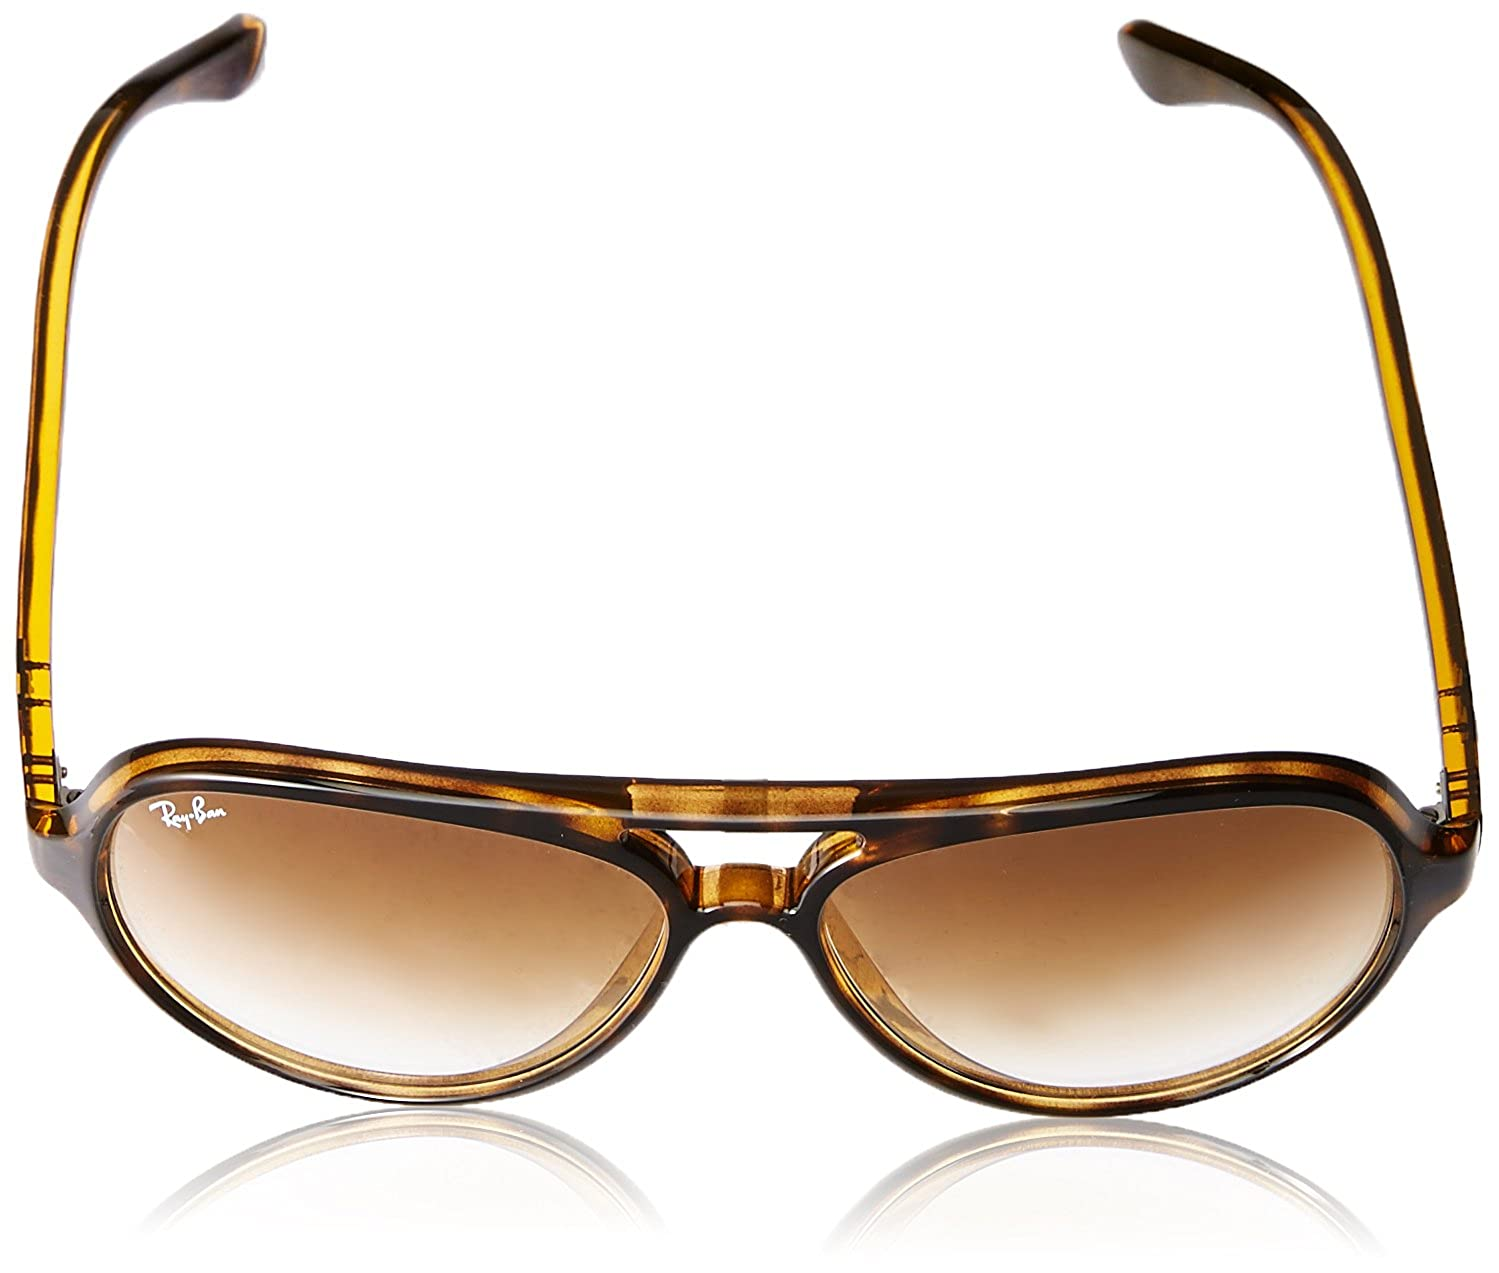 938da70fe35 Amazon.com  Ray-Ban Unisex Adult CATS 5000 Aviator Sunglasses in Light  Havana Crystal Brown Gradient RB4125 710 51 59  Clothing